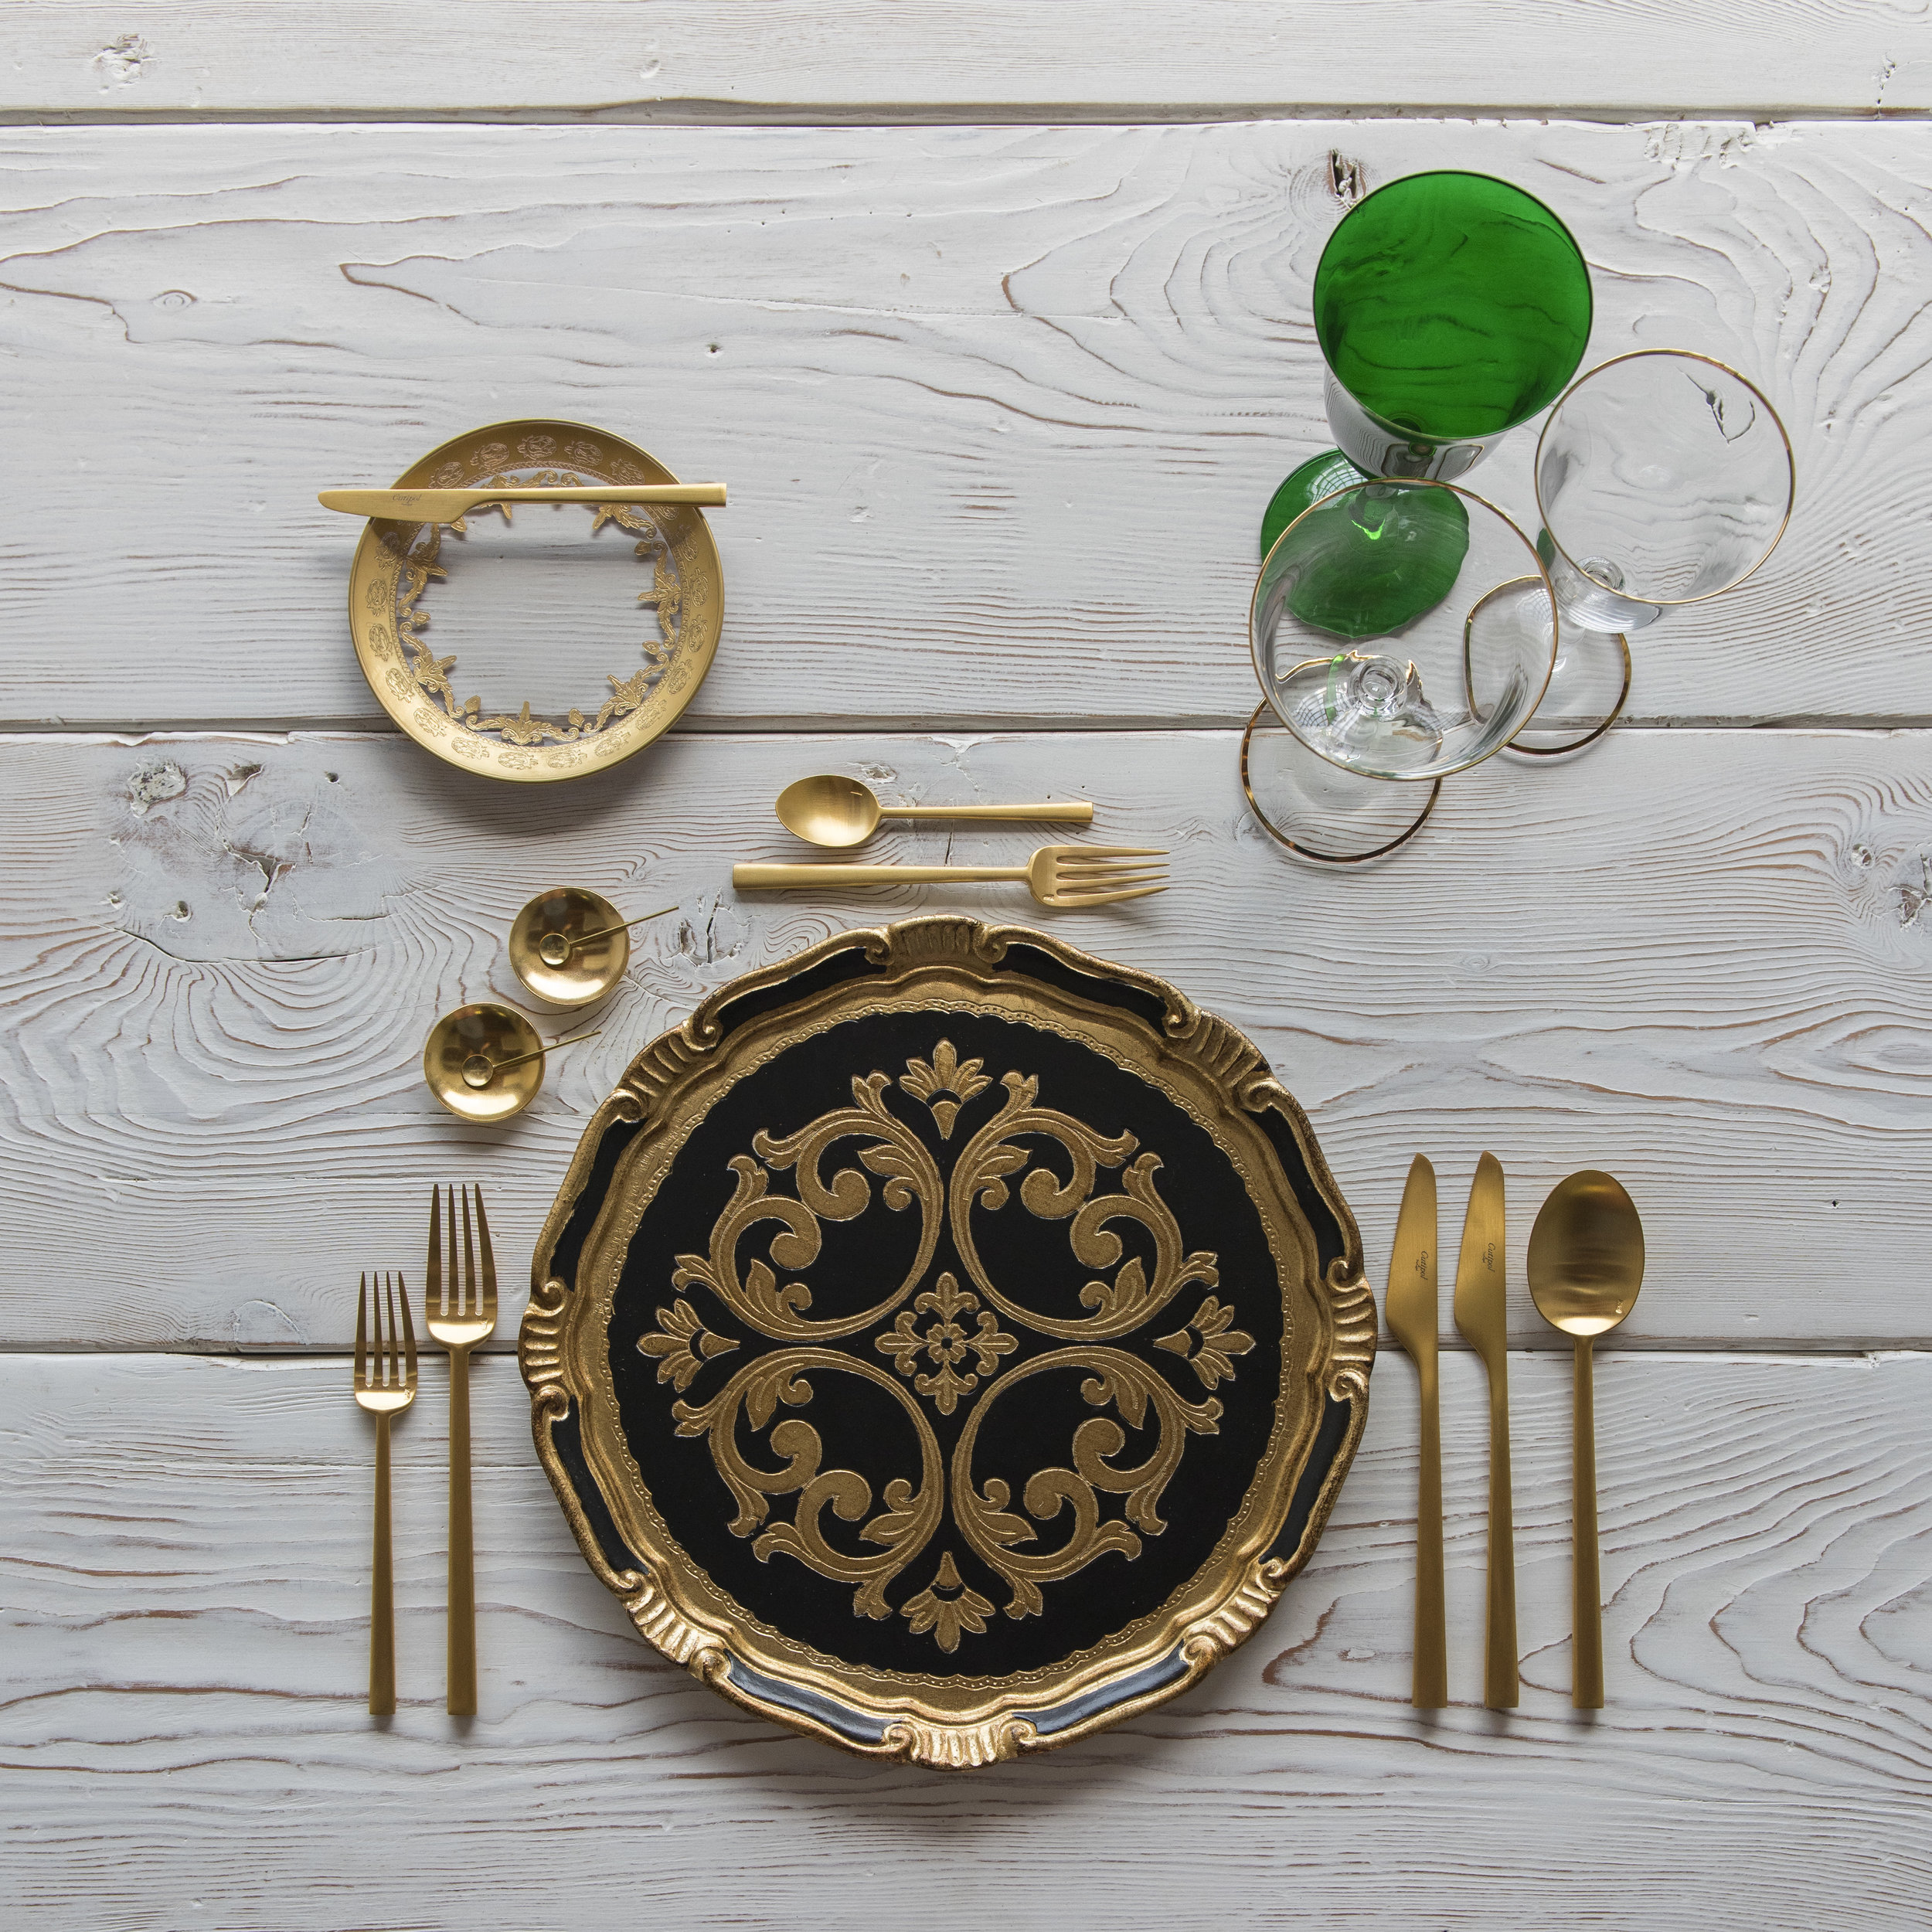 RENT: Florentine Chargers in Black/Gold + Versailles Glass Dinnerware in 24k Gold + Rondo Flatware in Brushed 24k Gold + Chloe 24k Gold Rimmed Stemware + Chloe 24k Gold Rimmed Goblet in Emerald + 14k Gold Salt Cellars + Tiny Gold Spoons   SHOP: Florentine Chargers in Black/Gold + Rondo Flatware in Brushed 24k Gold + Chloe 24k Gold Rimmed Stemware + 14k Gold Salt Cellars + Tiny Gold Spoons